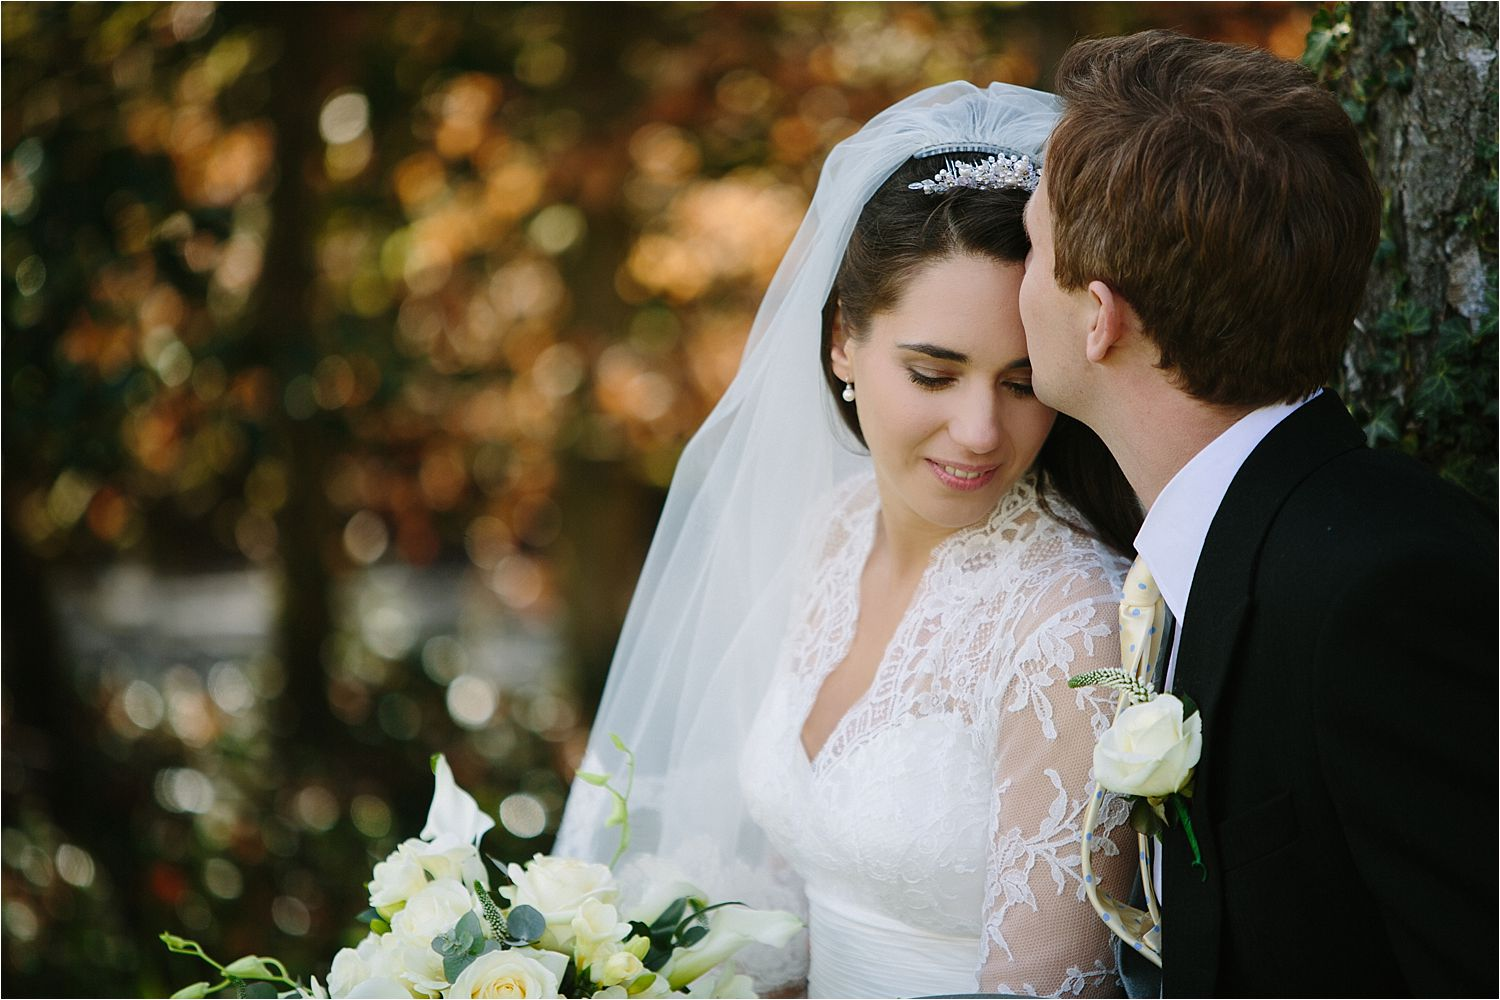 Groom kisses his beautiful bride's forehead in the grounds of Cheshire wedding venue, Hilltop House